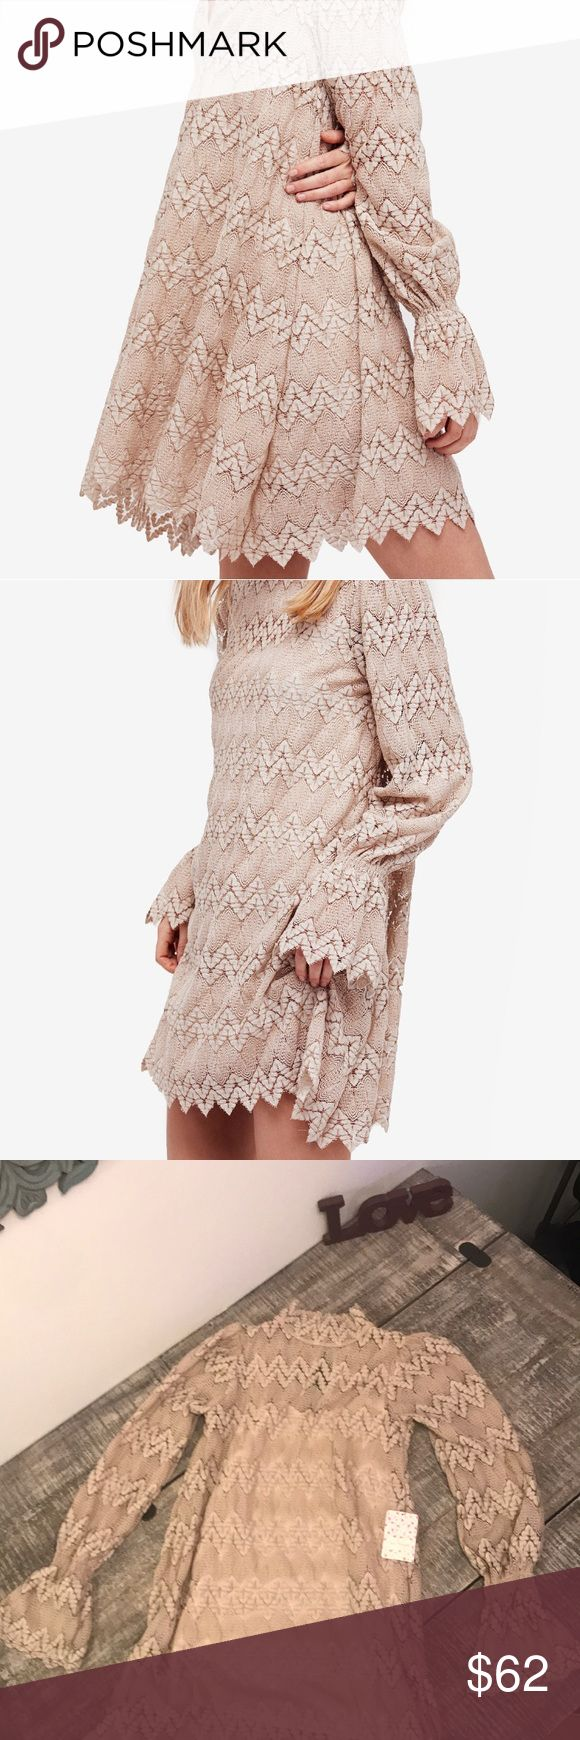 Free people laced dress Bohemian styles dress has a bold lace overlay with bell sleeves. A high neckline and a button closure at the keyhole back. Also comes with an underlay as shown in the last picture Free People Dresses